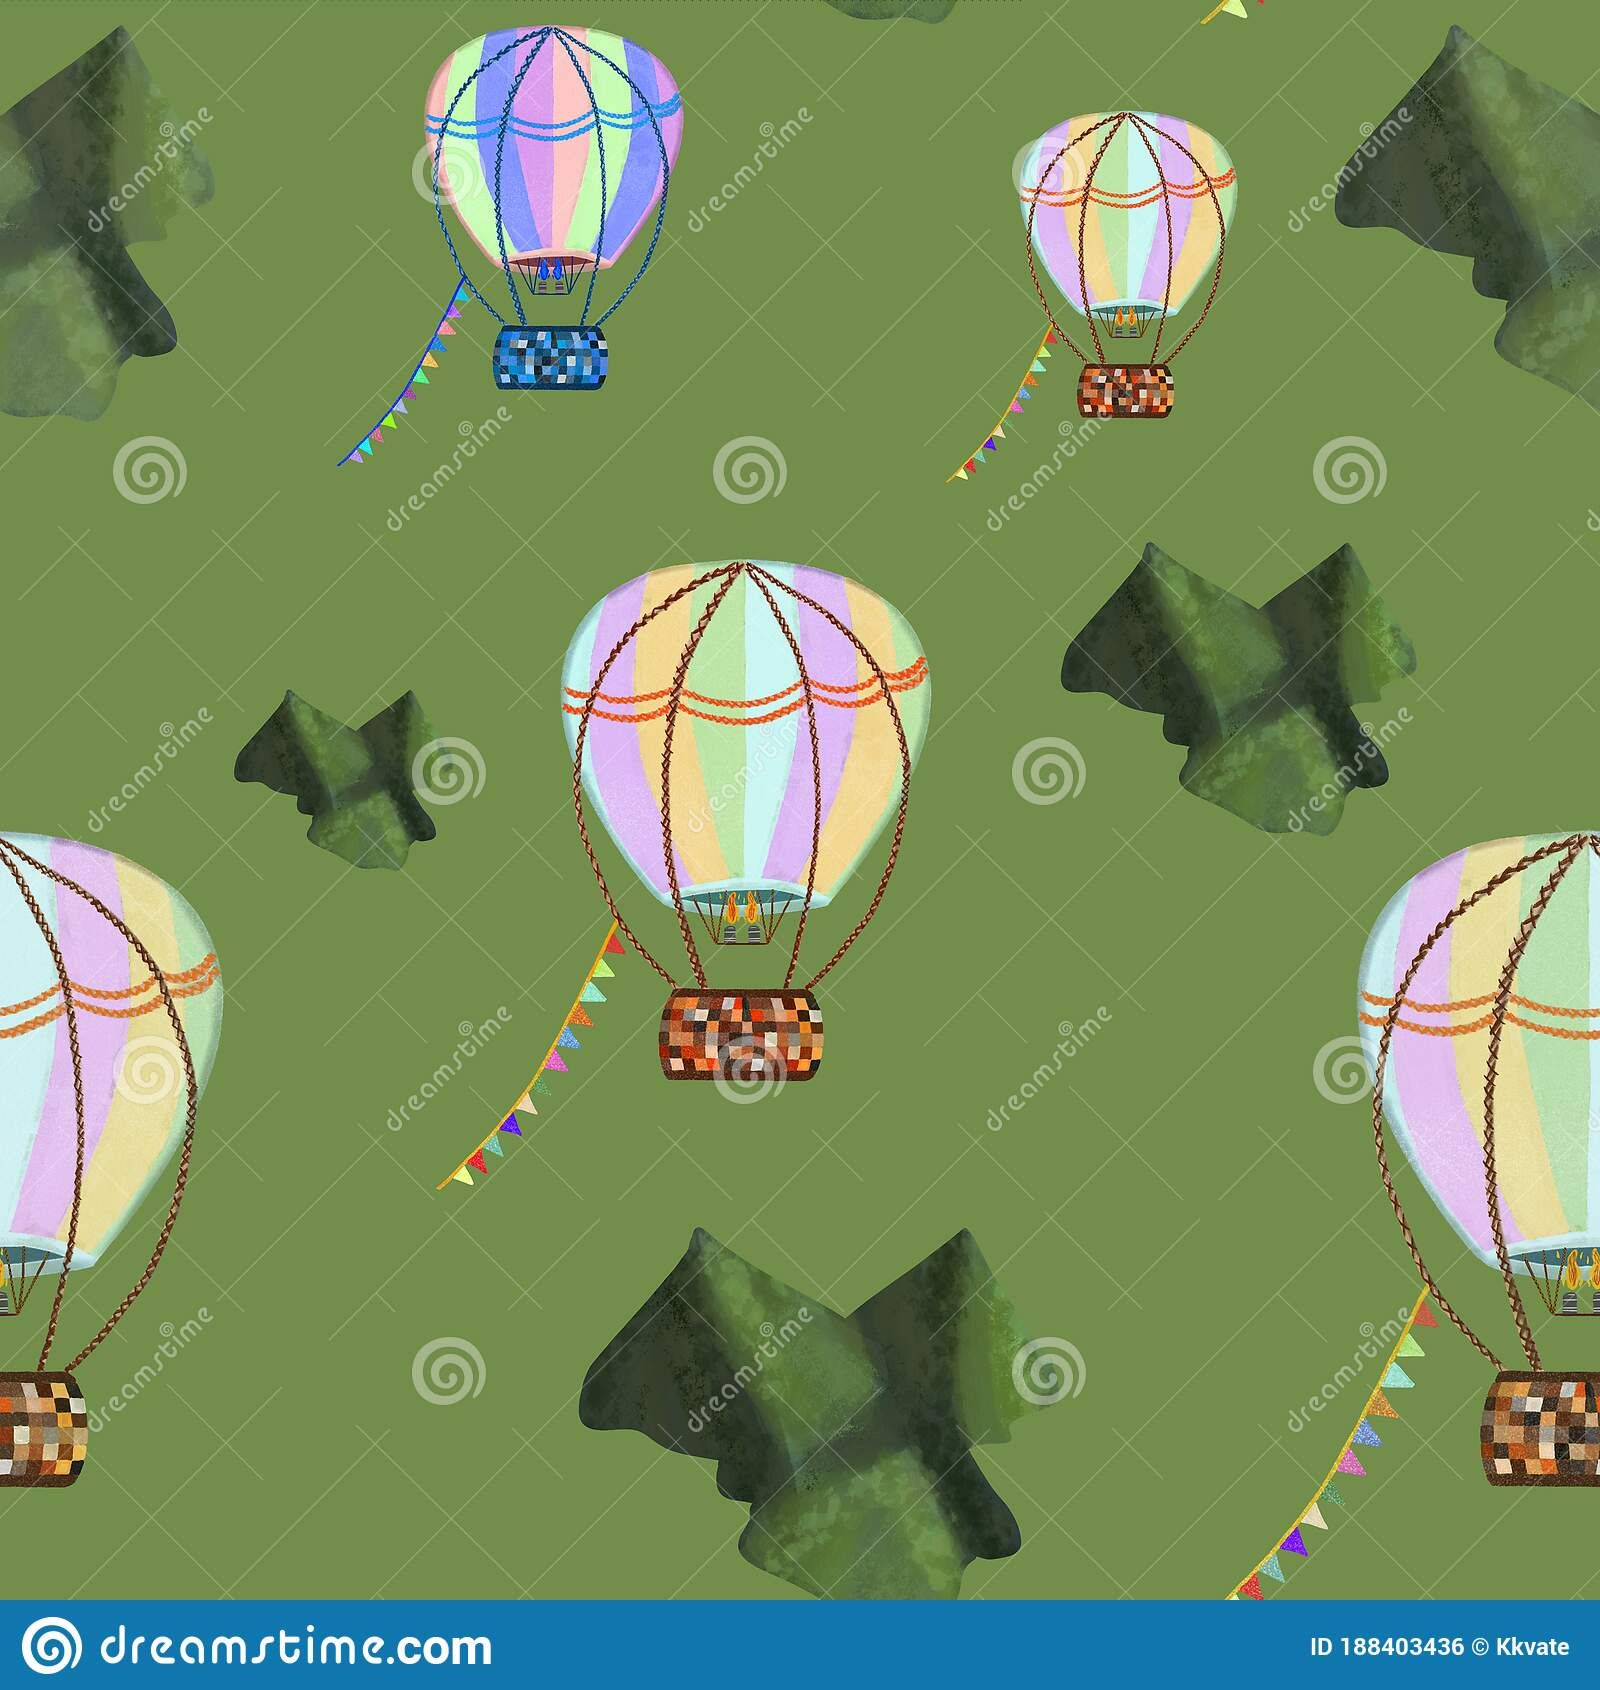 Colorful Hot Air Balloons Flying Across Green Mountains On Green Background Seamless Pattern Stationery Transport Travel Kids Stock Illustration Illustration Of Blue Print 188403436